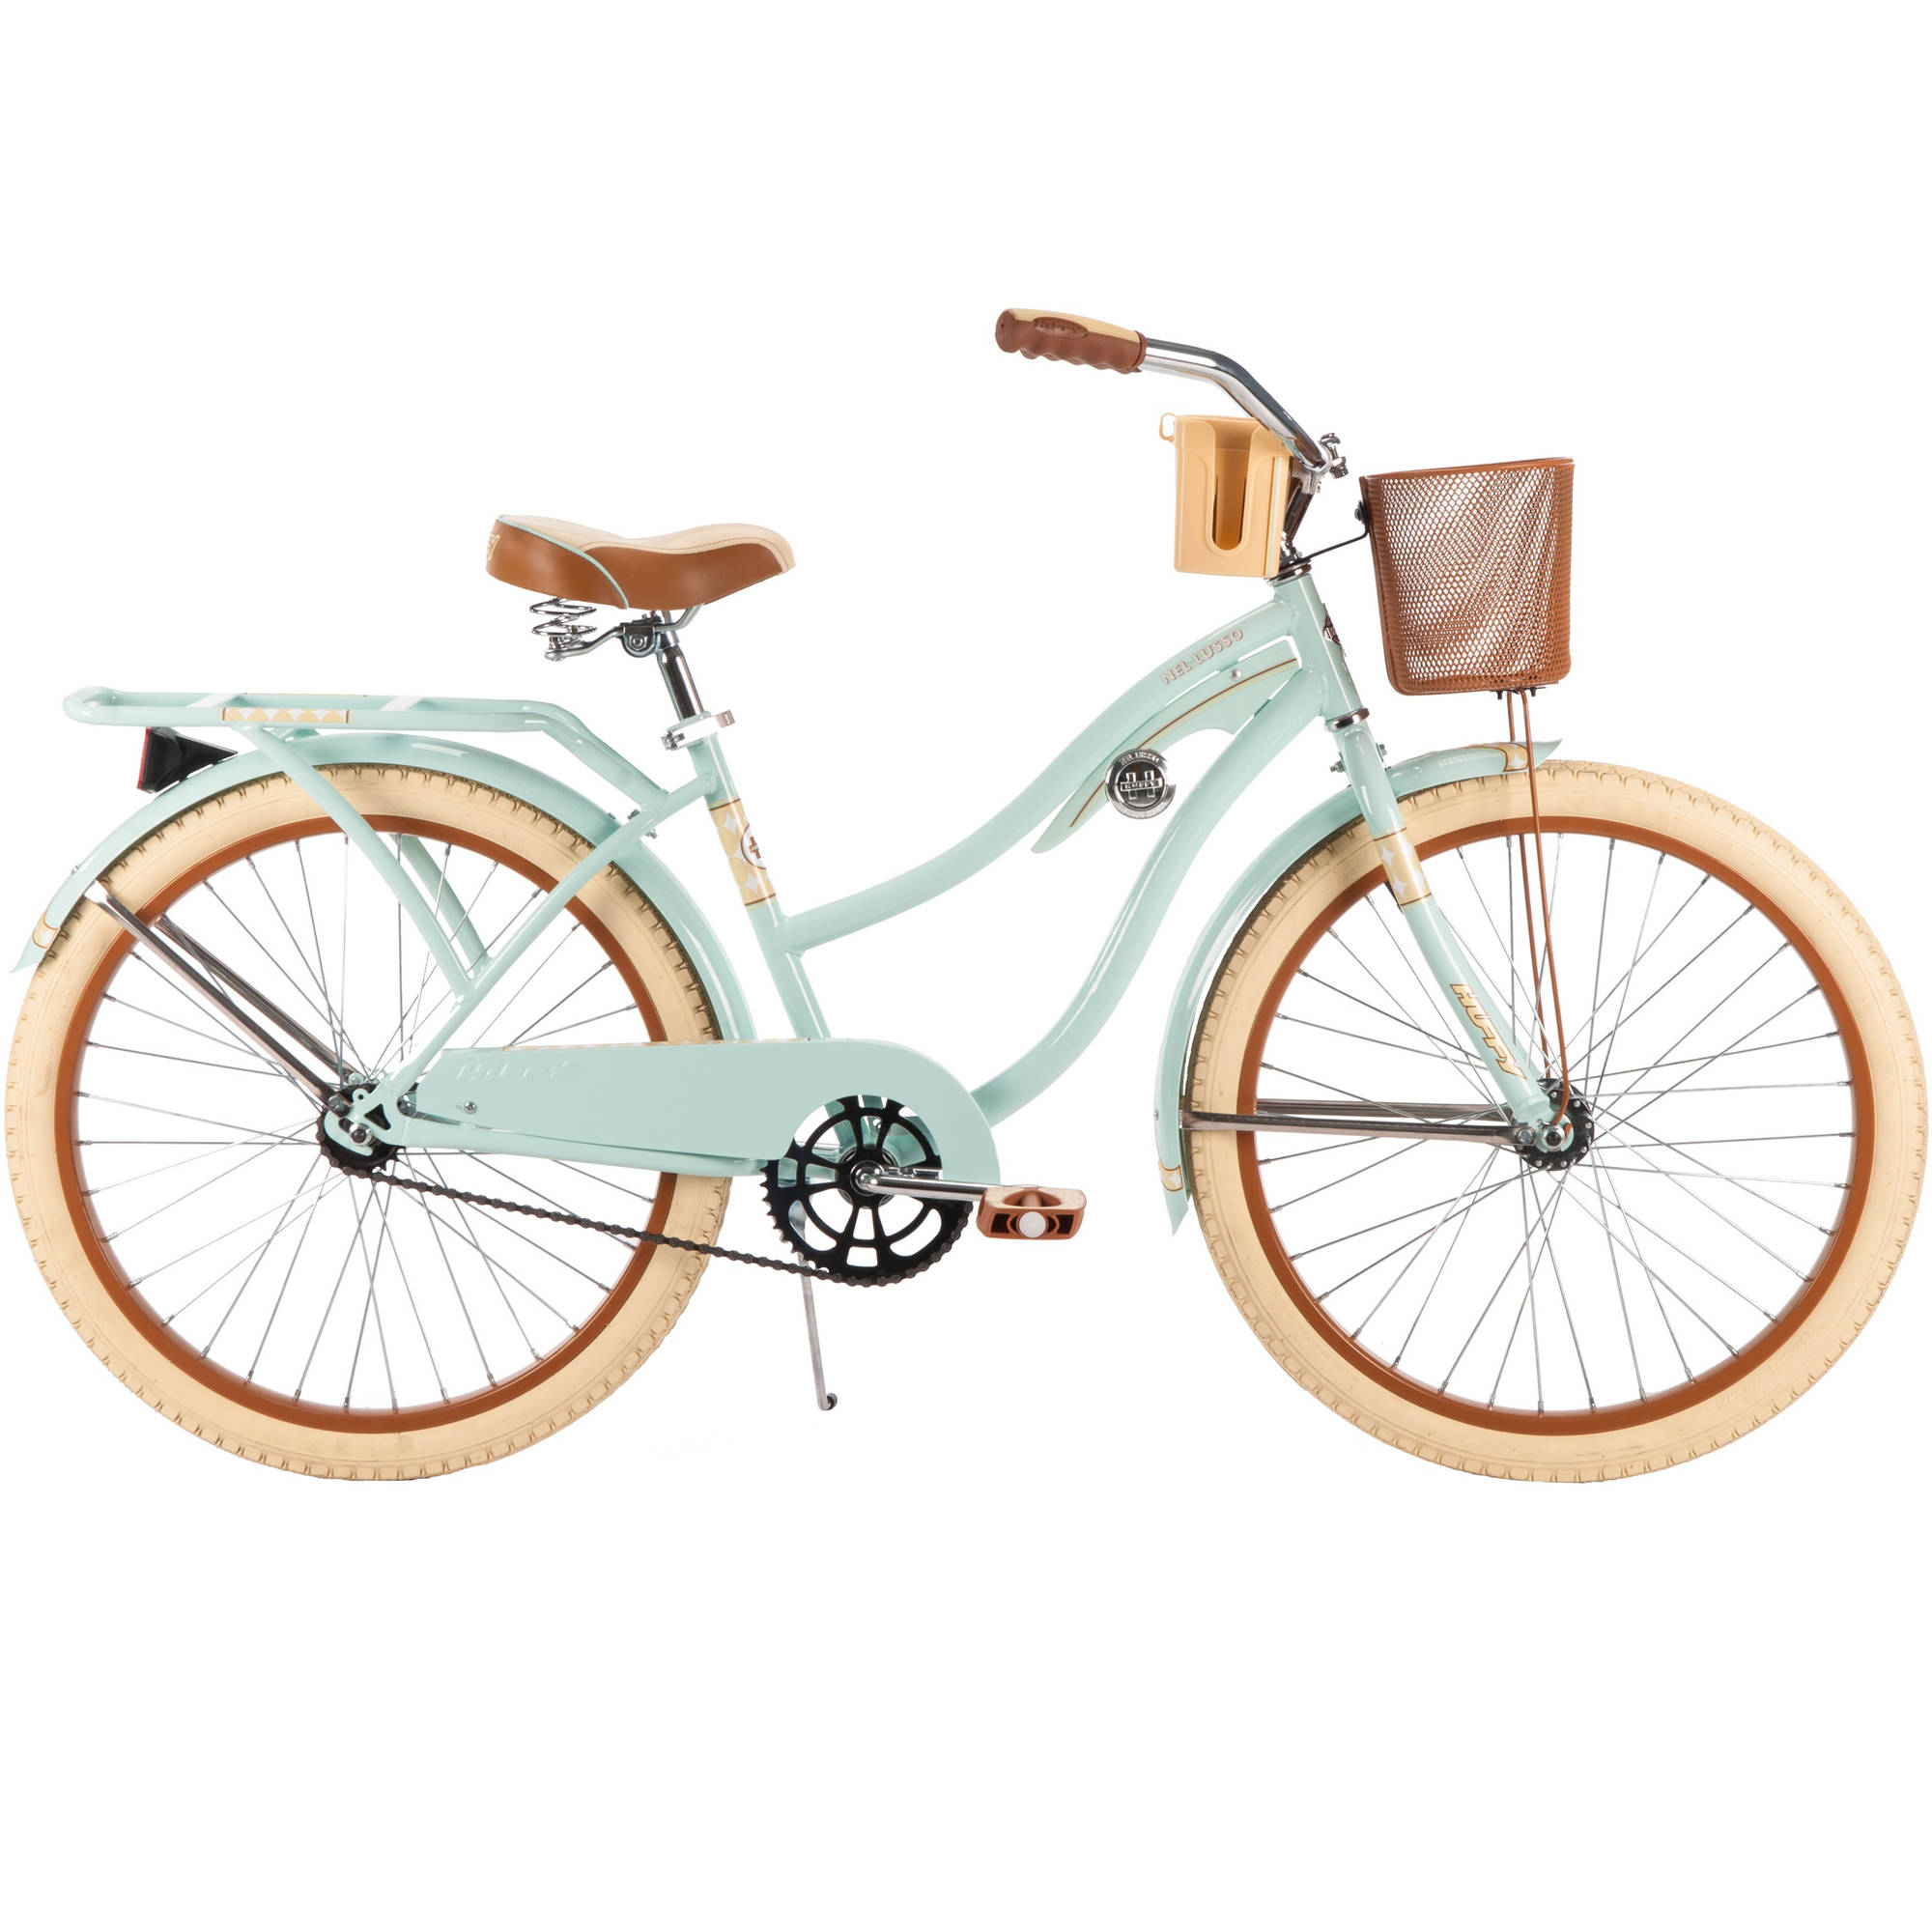 "Huffy 24"" Nel Lusso Womens' Cruiser Bike with Basket, Mint by Huffy"